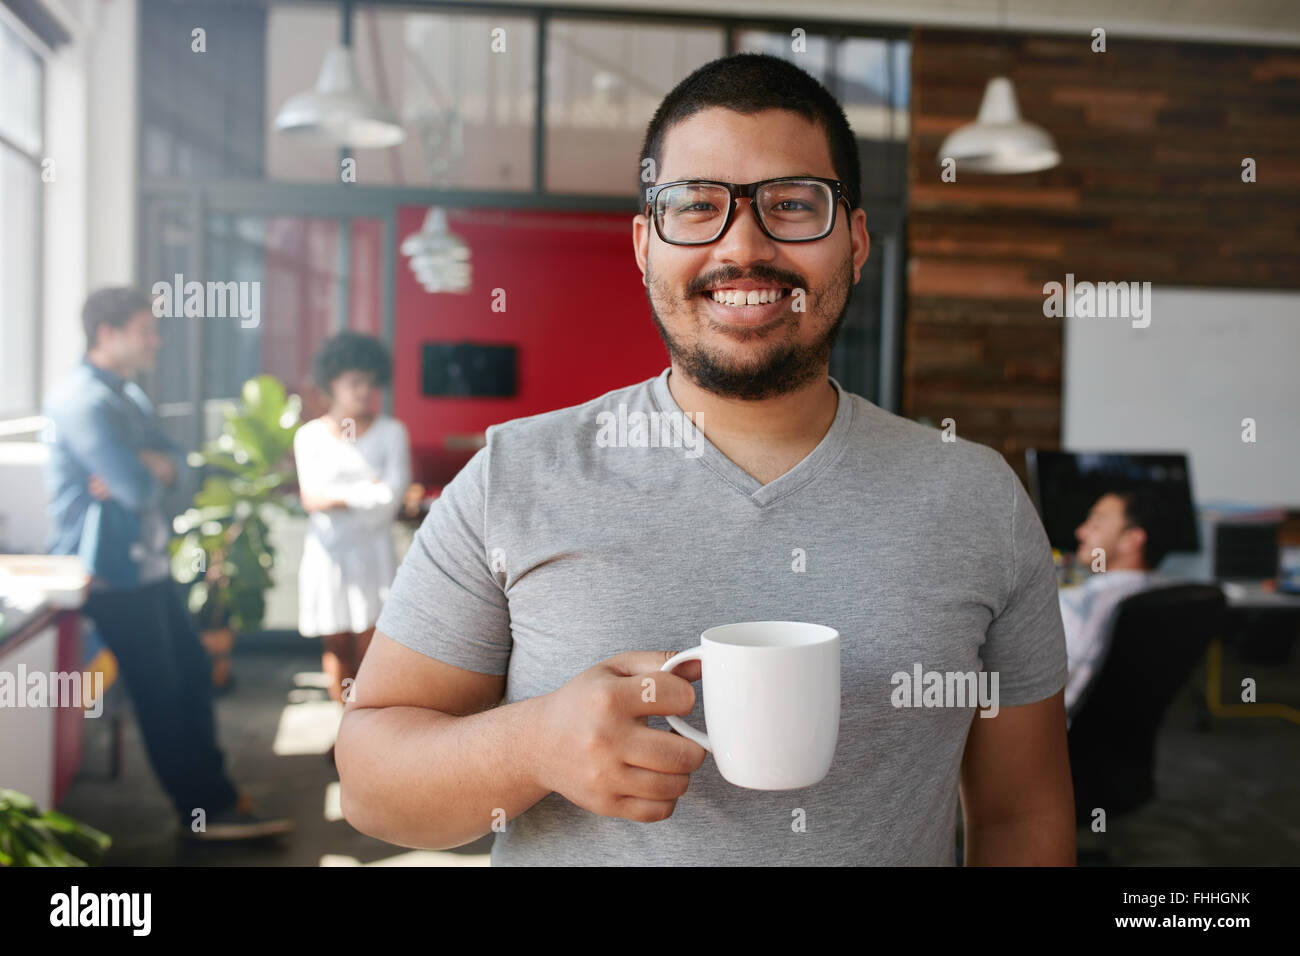 Portrait of smiling office worker having a coffee with his colleagues talking in the background. - Stock Image